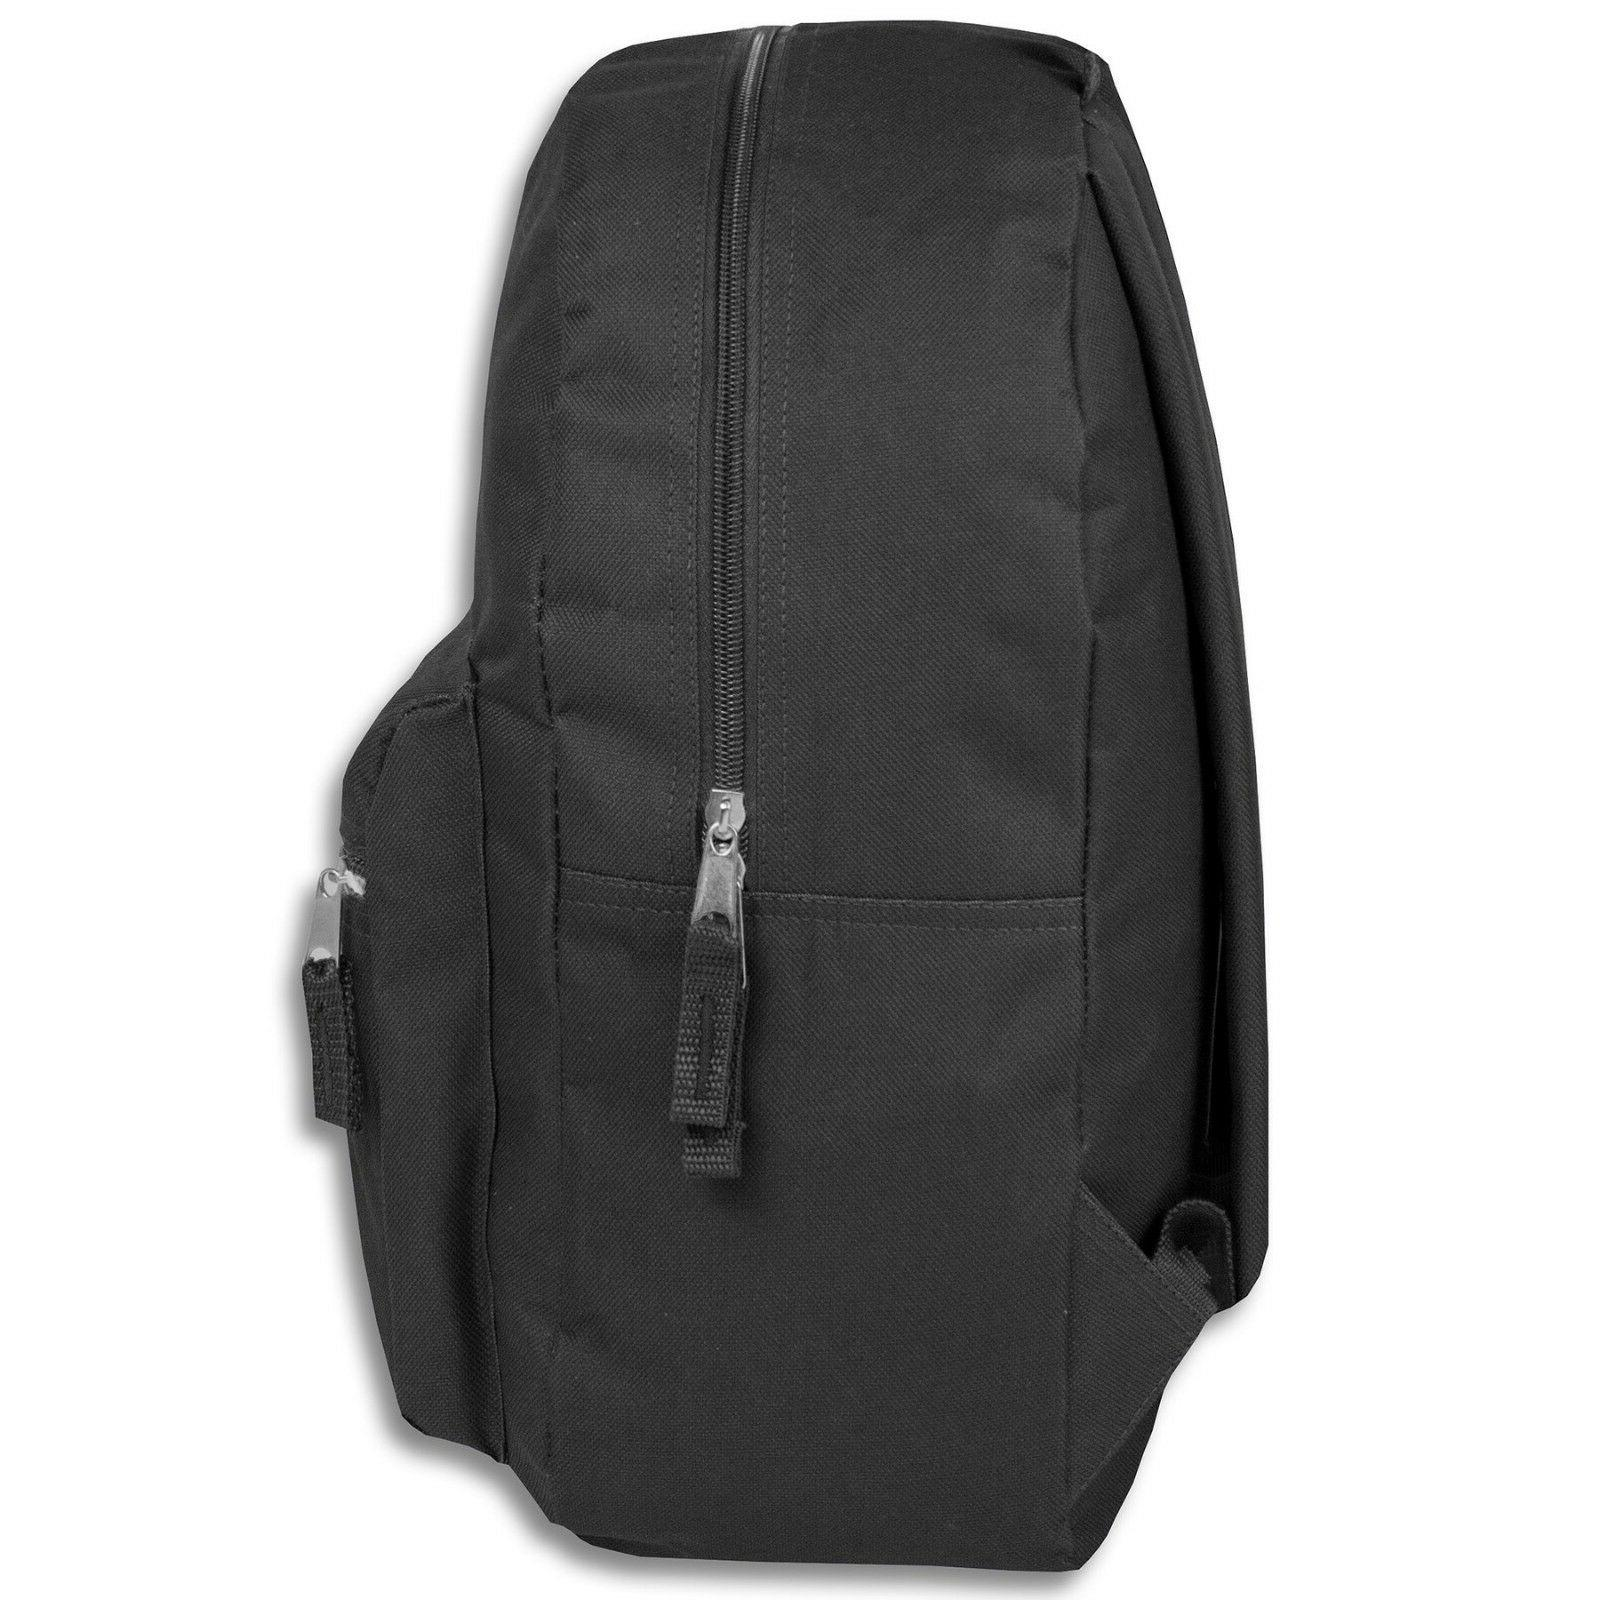 Classic Backpacks in 6 Case Pack 24 Wholesale Assorted